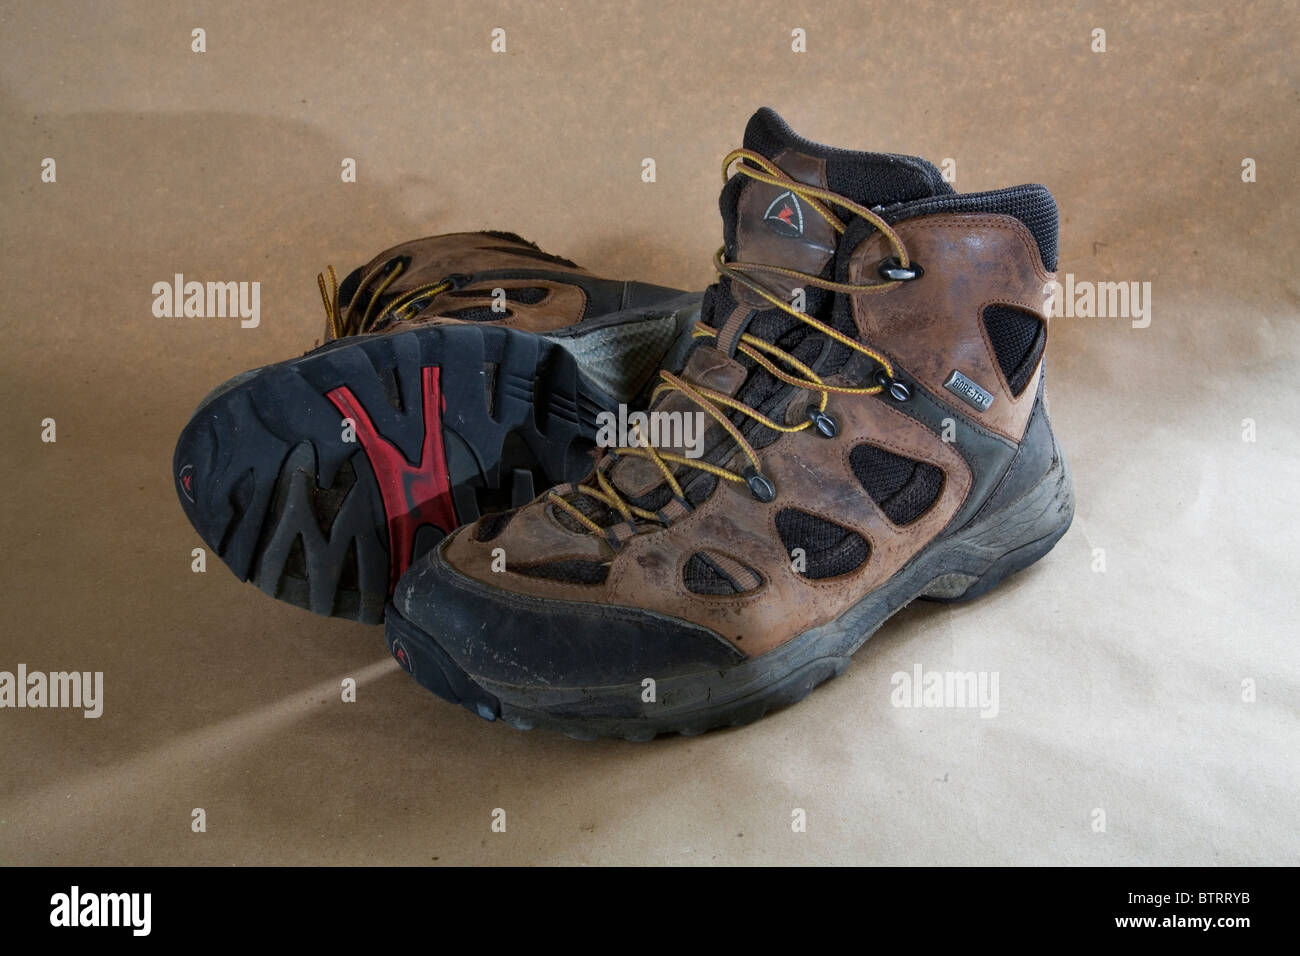 A pair of worn out lace up hiking boots. - Stock Image